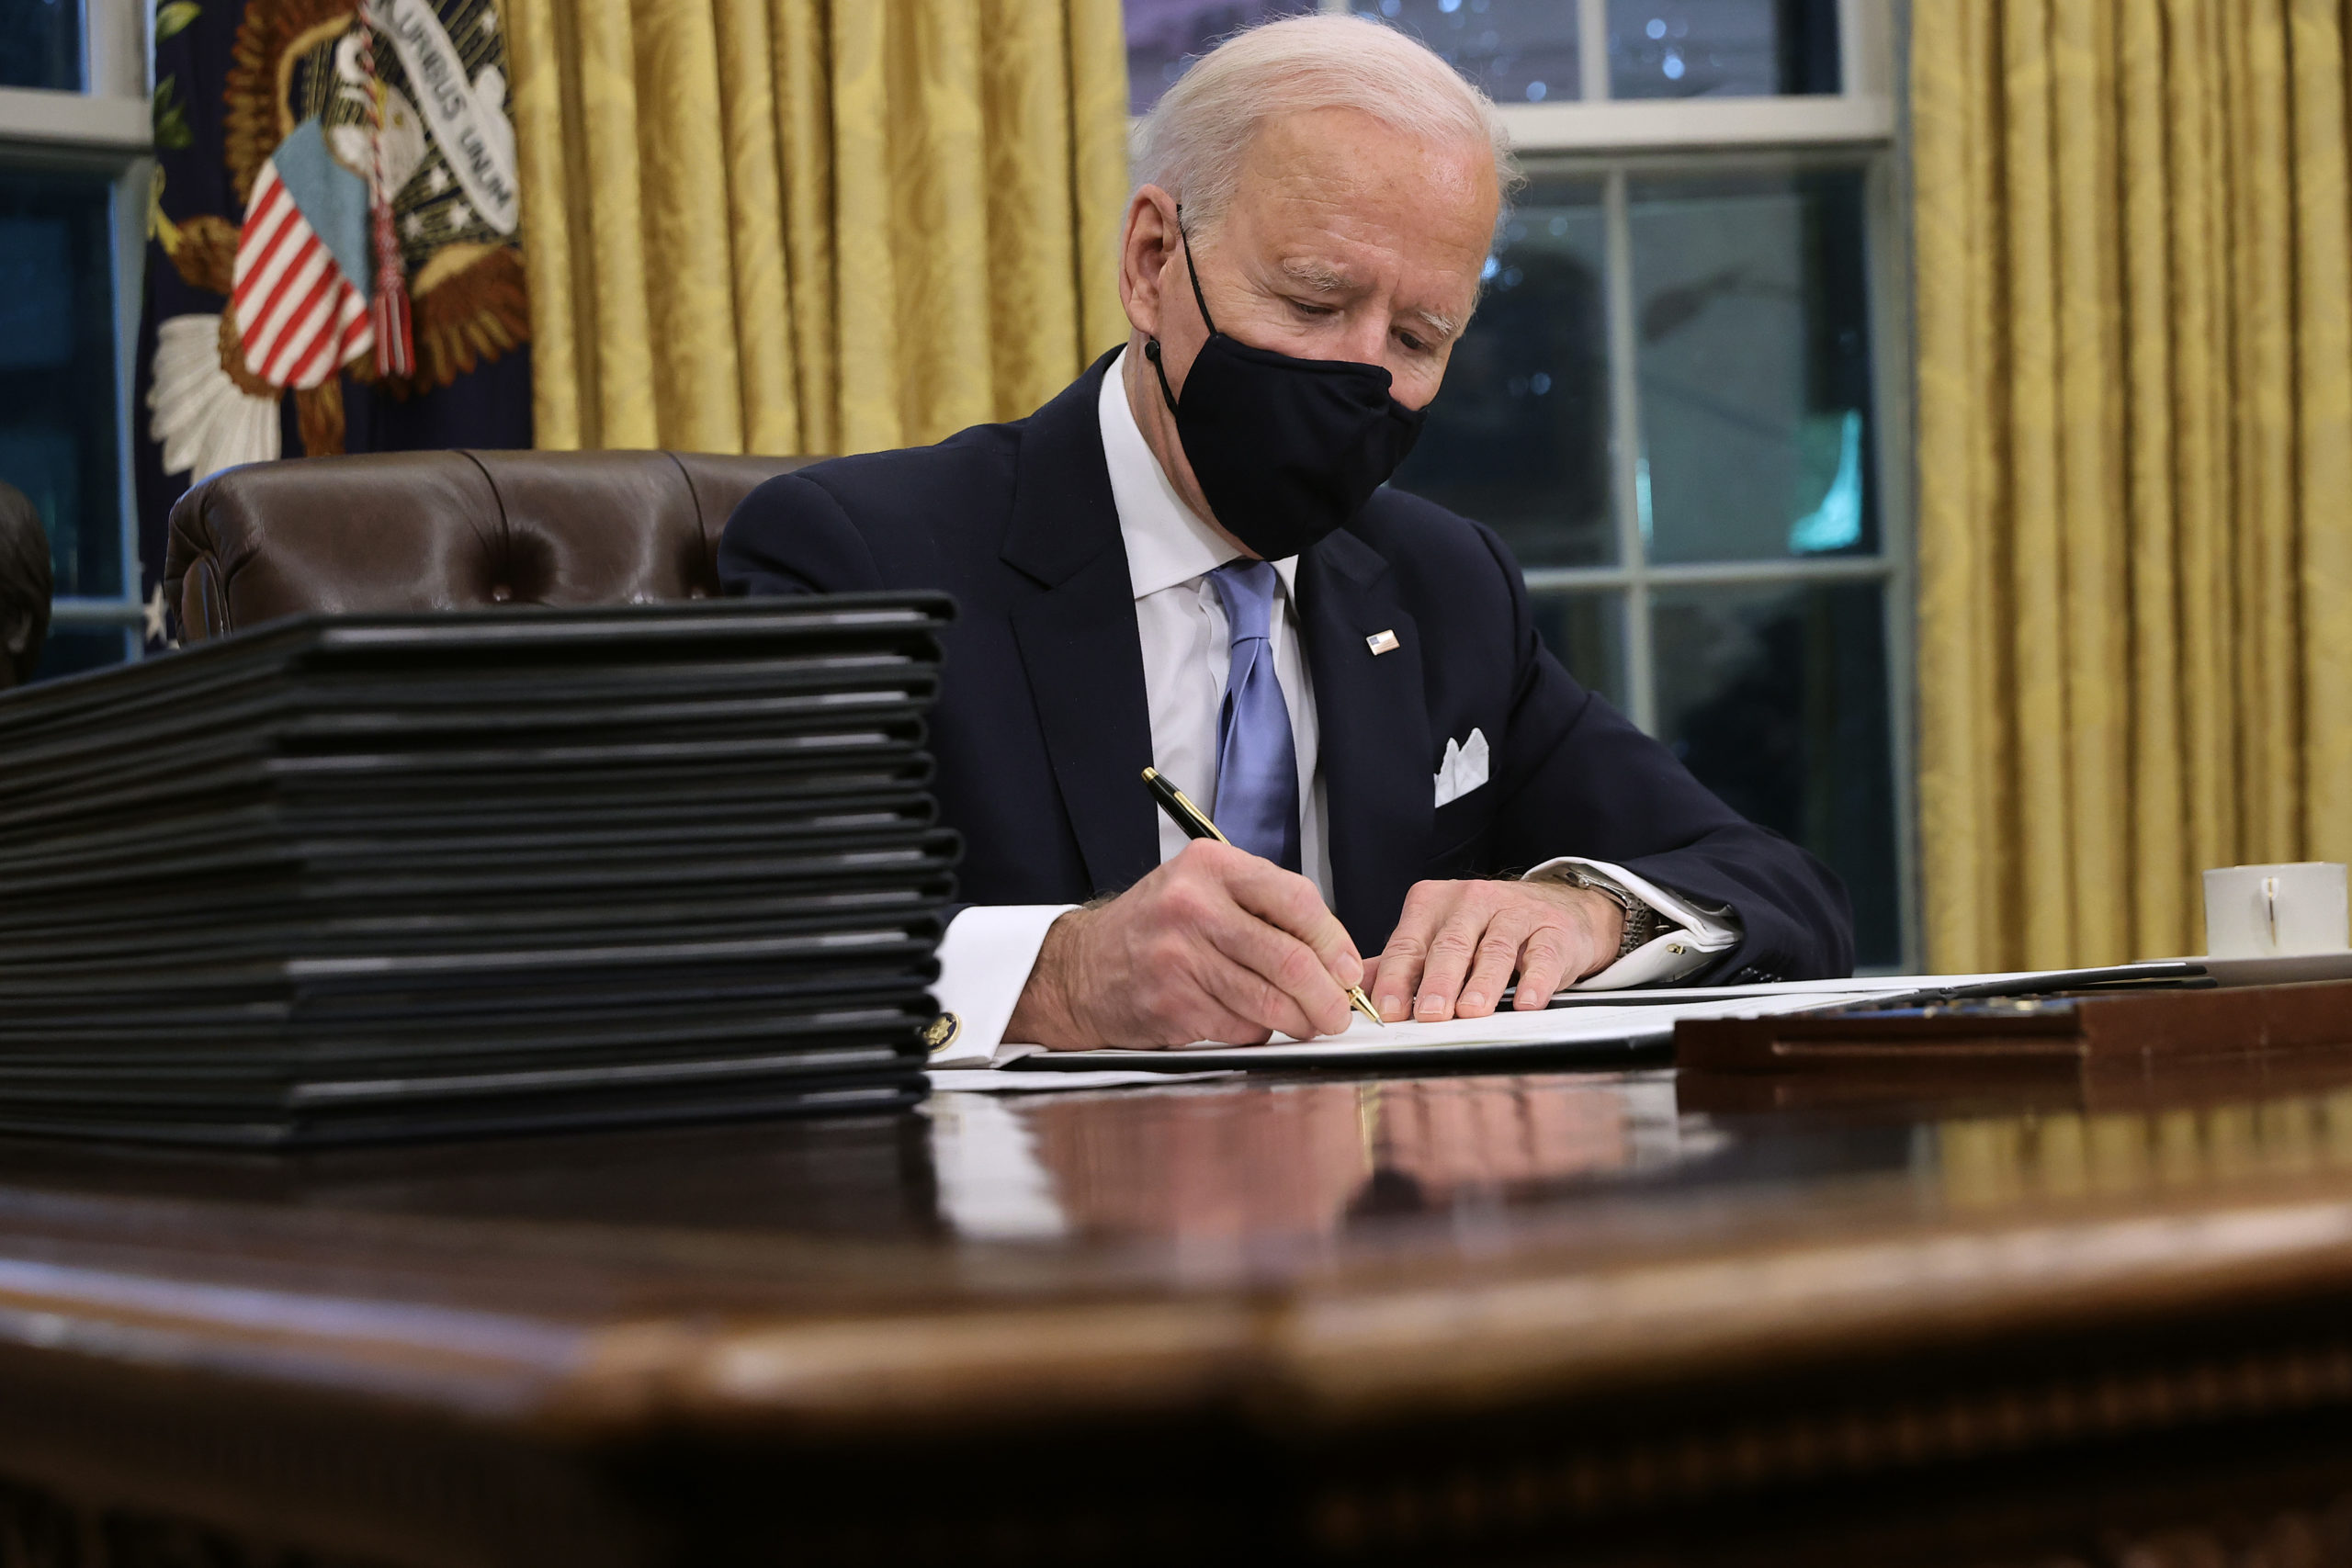 President Joe Biden prepares to sign a series of executive orders on Jan. 20. (Chip Somodevilla/Getty Images)